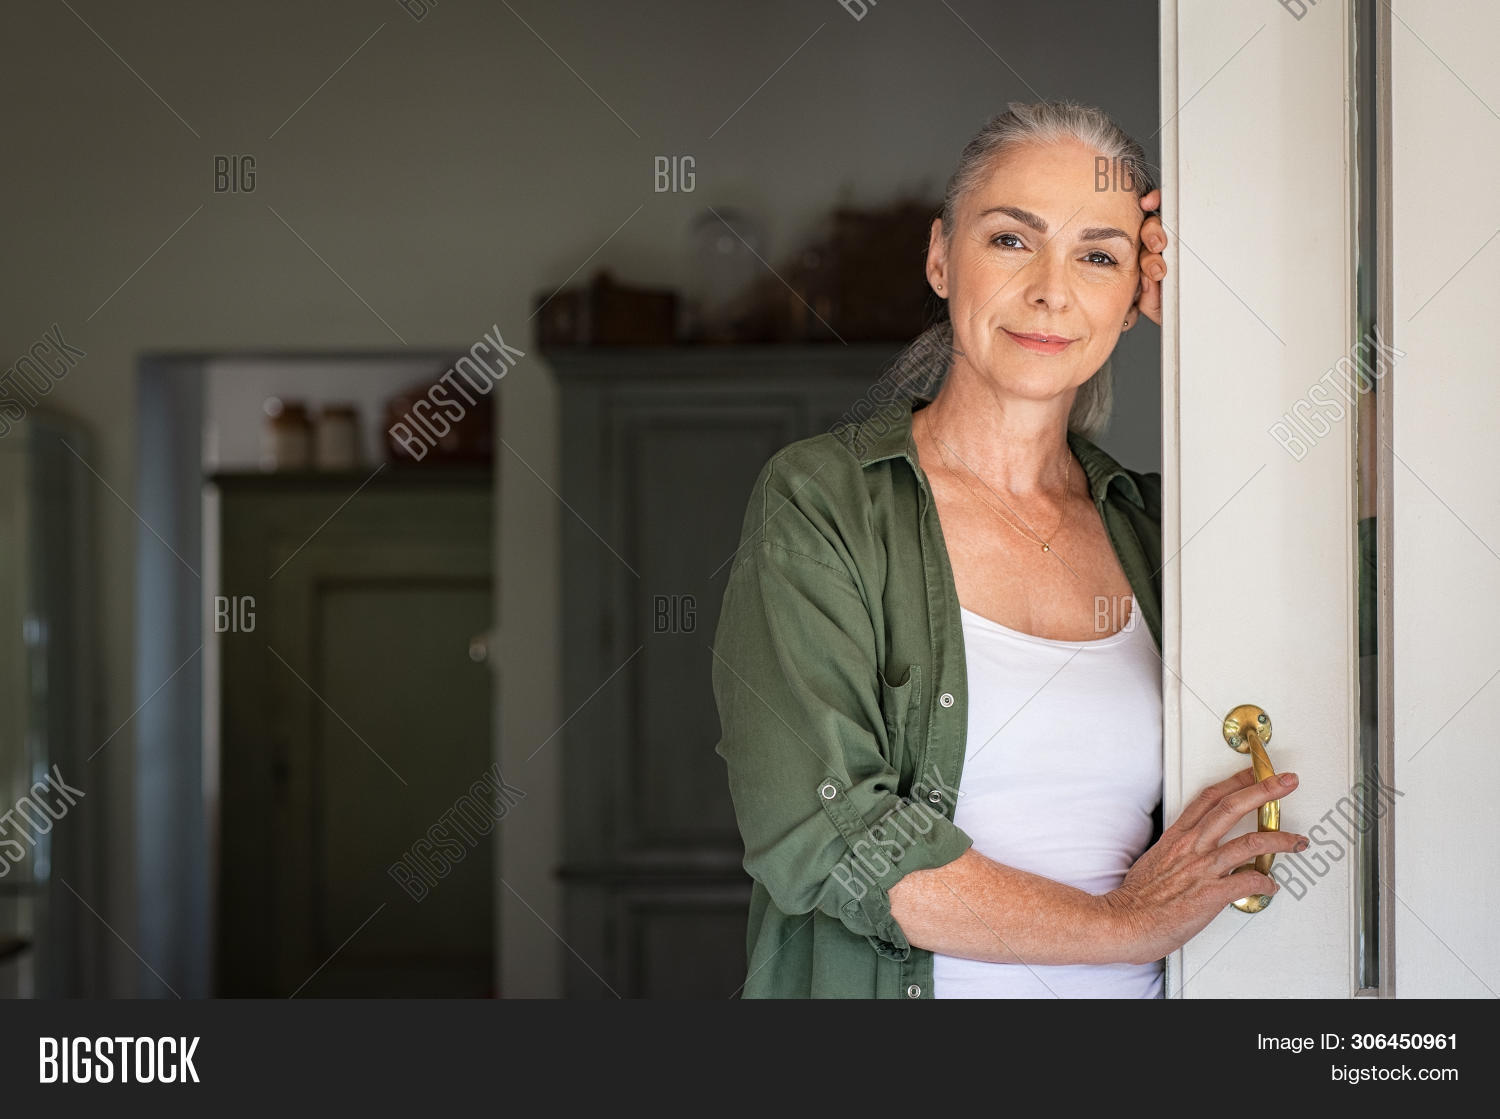 active woman,apartment,beautiful,bed and breakfast,casual,confident,copy space,door,doorway,elder,entrance,grey,hair,happy,healthy,healthy woman,home,hope,hopeful,house,imagination,imagine,indoor,lady,leaning,leaning against wall,leaning on wall,looking,looking at camera,mature,new,old,old woman,owner,pensioner,pensive woman,people,portrait,relax,relaxing at home,retired,retirement,satisfaction,satisfied,senior,serene,smile,standing,thinking,welcome